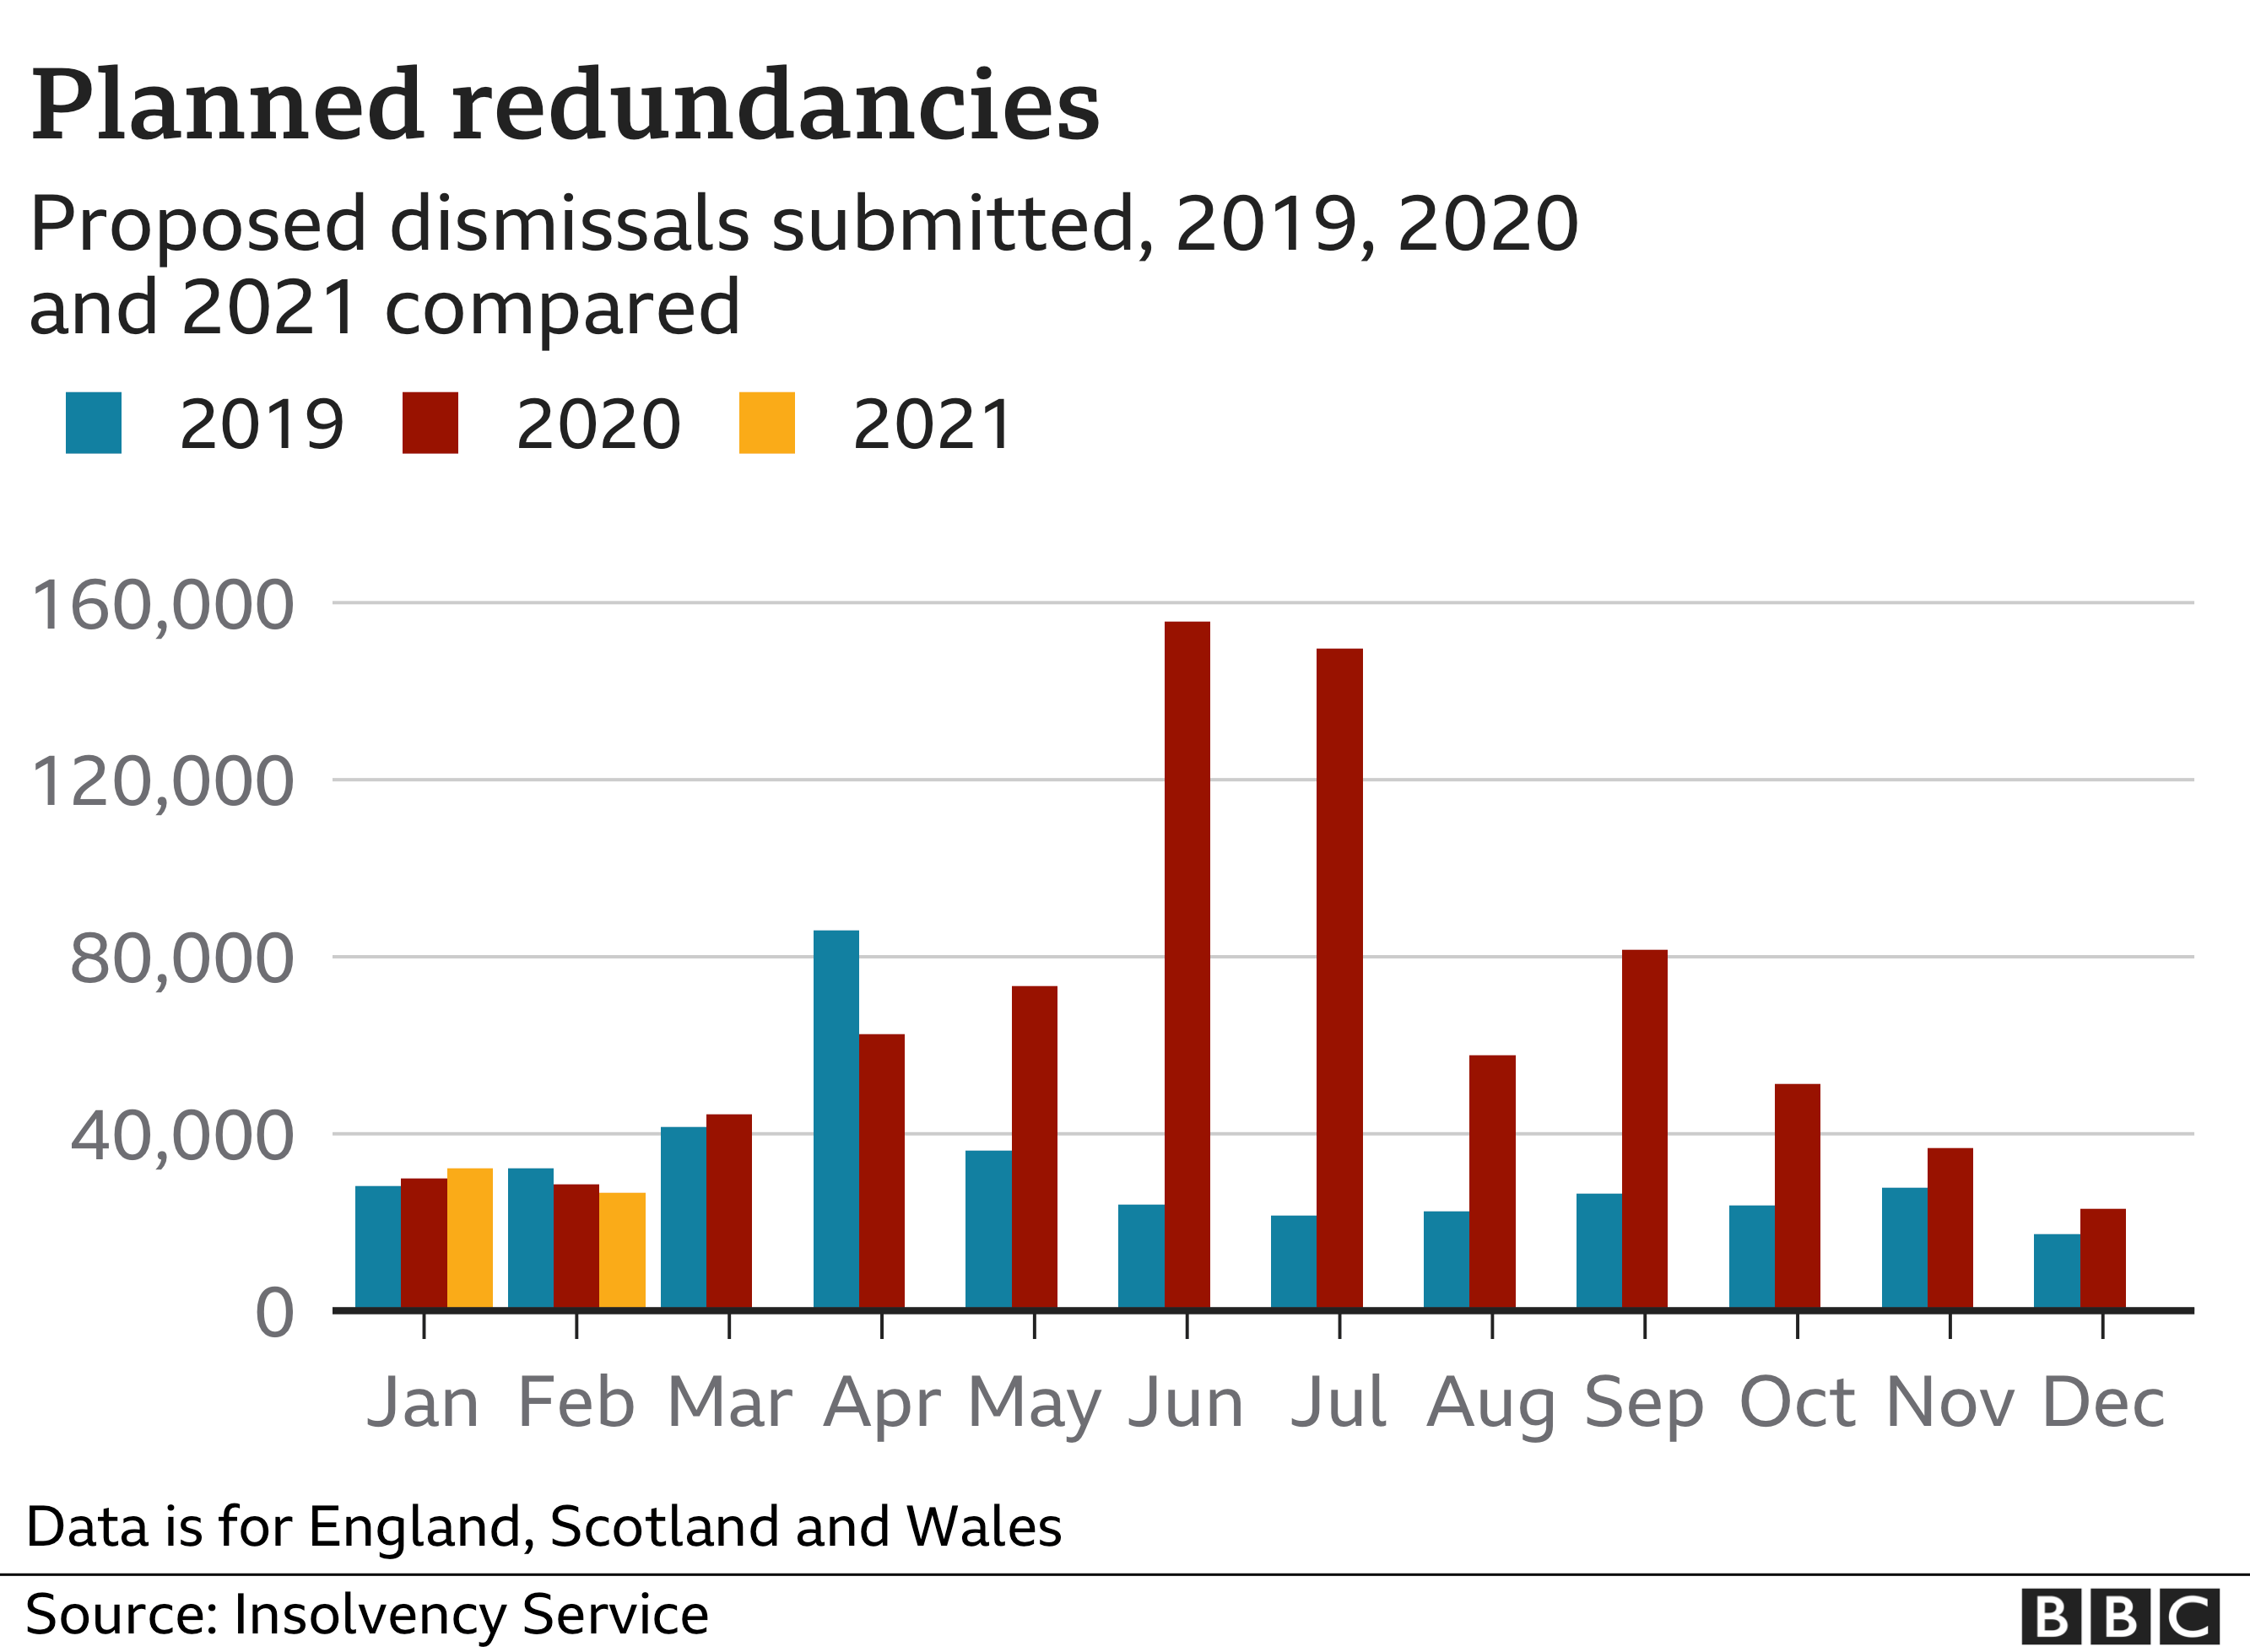 Chart showing planned redundancies by month for 2019, 2020 and 2021